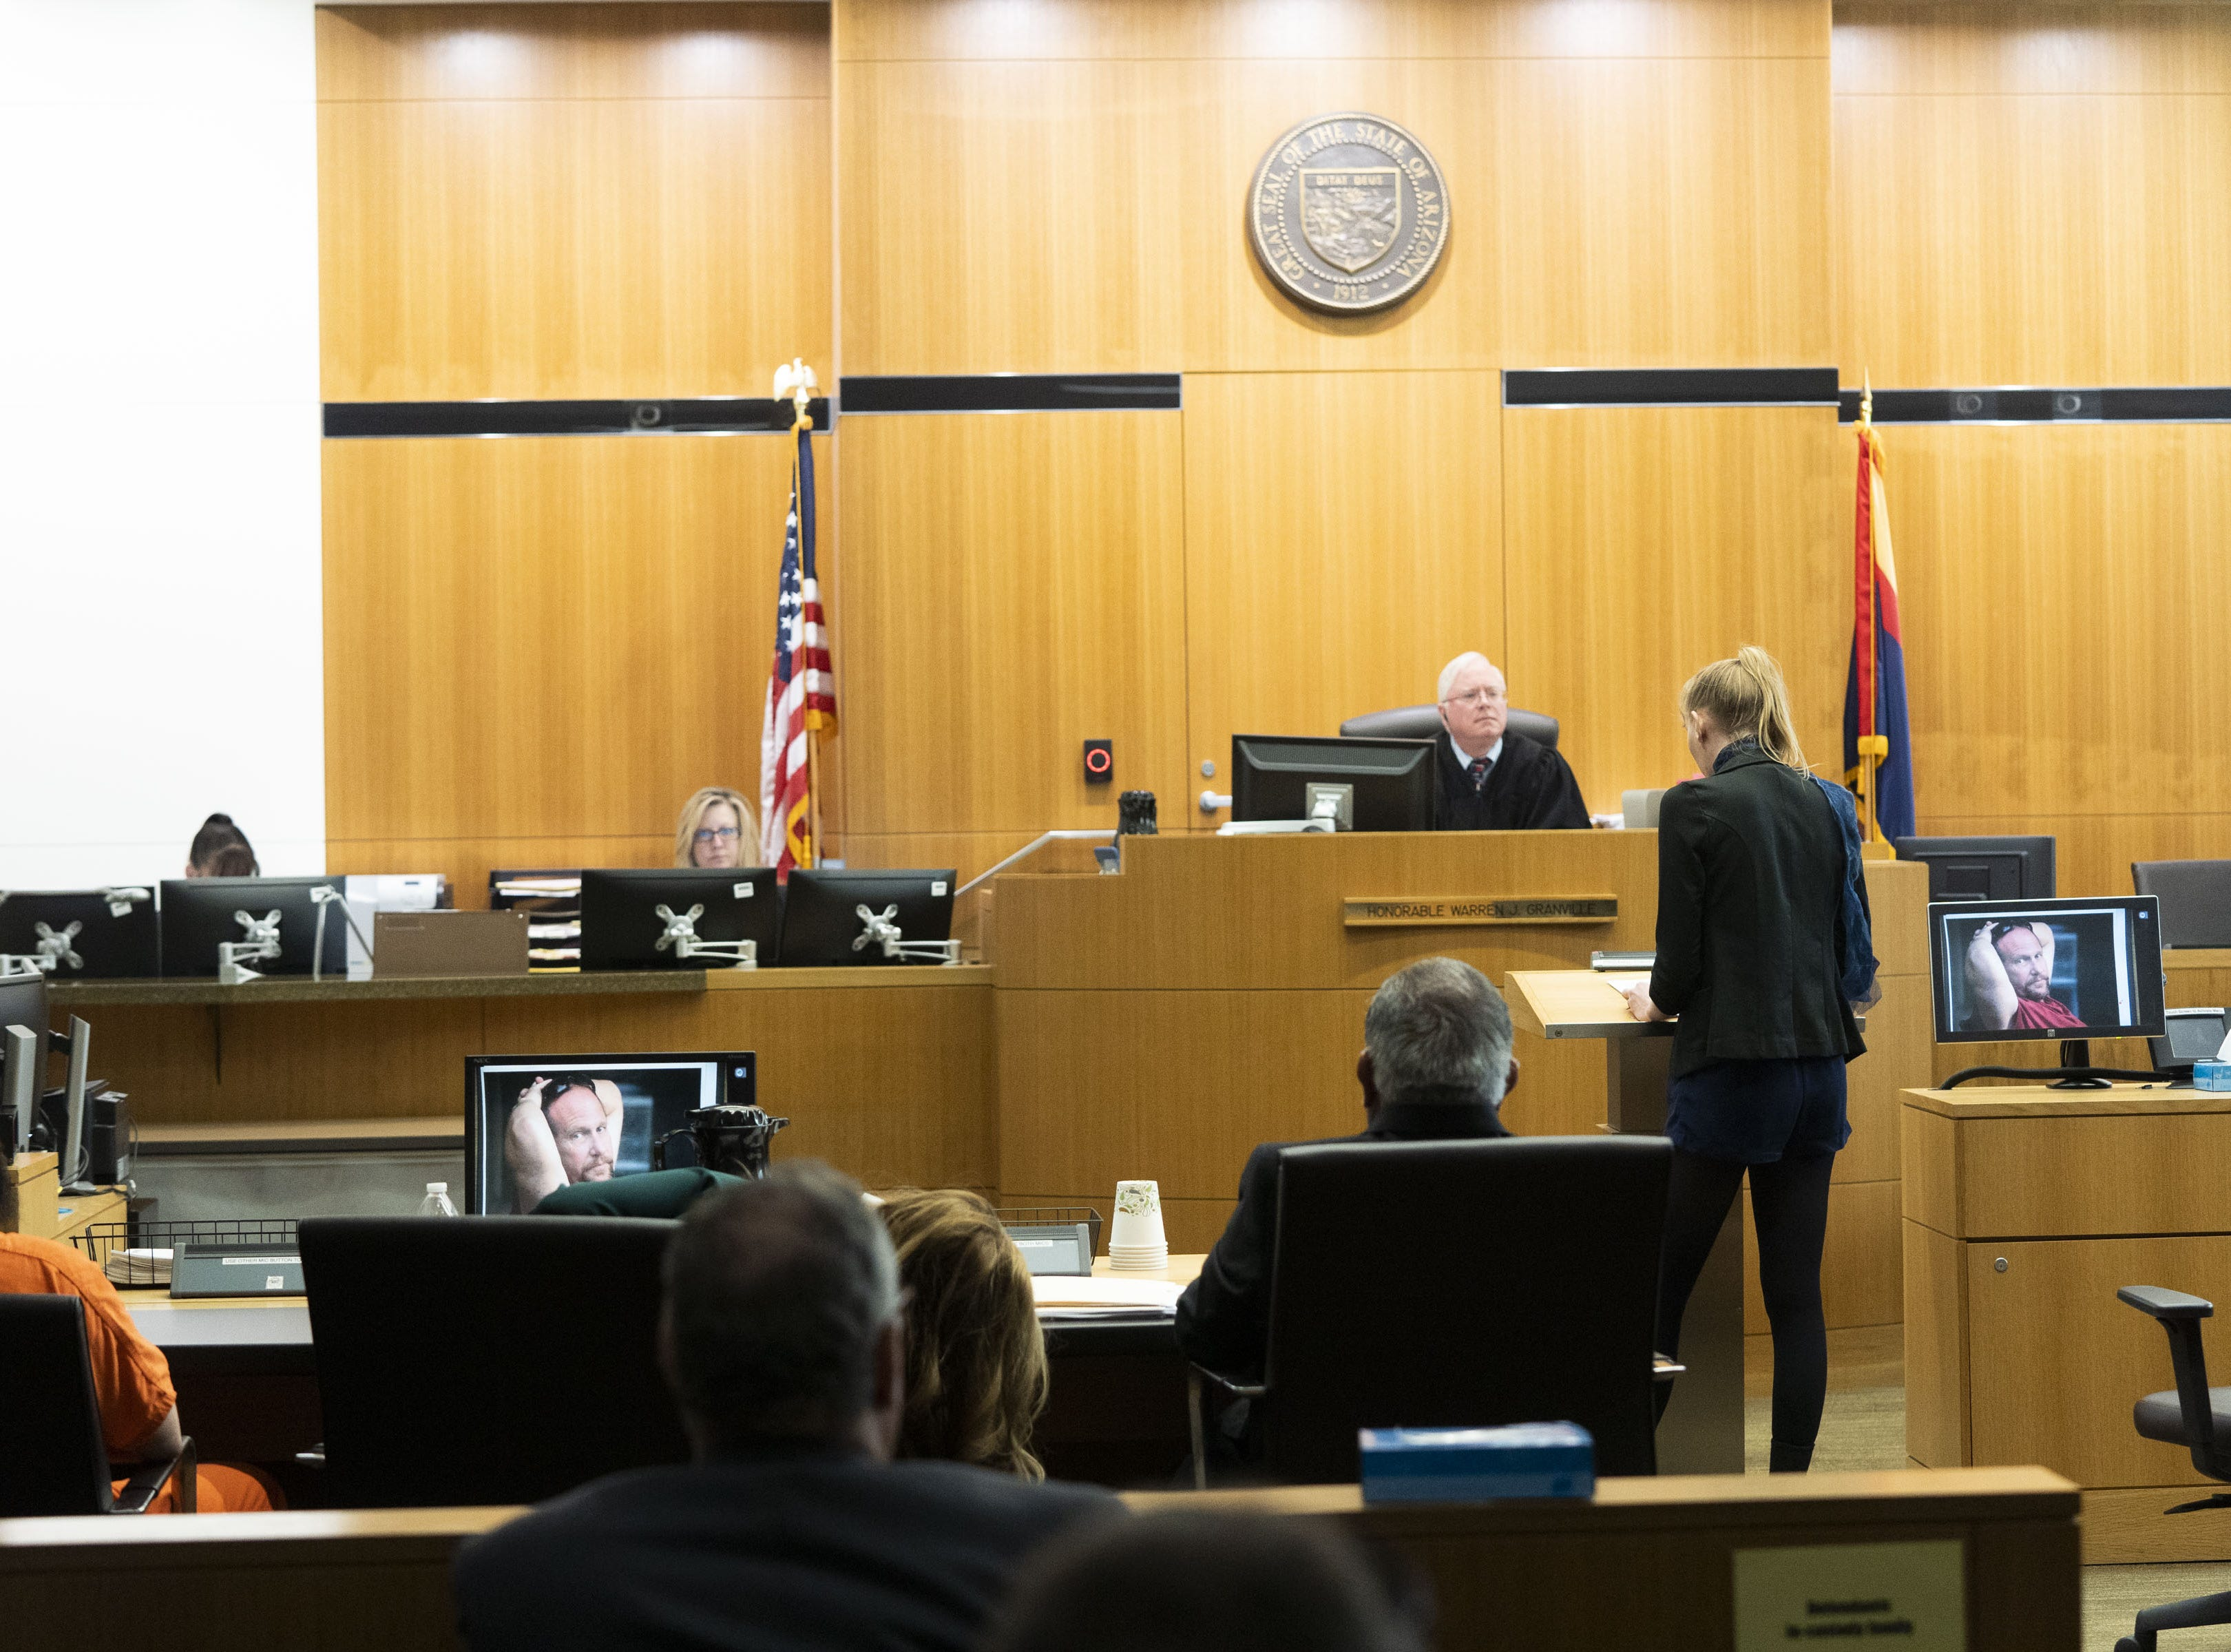 Melissa Gaudet, 26, daughter of Bruce Gaudet, speaks to Judge Warren Granville about how hard it is for them losing their dad. Judge Warren Granville sentenced Michael Crane to life without parole for the first-degree murder of Bruce Gaudet, Glenna and Lawrence Shapiro, kidnapping, burglary, arson, and other charges at Maricopa County Superior Court on March 22, 2019.